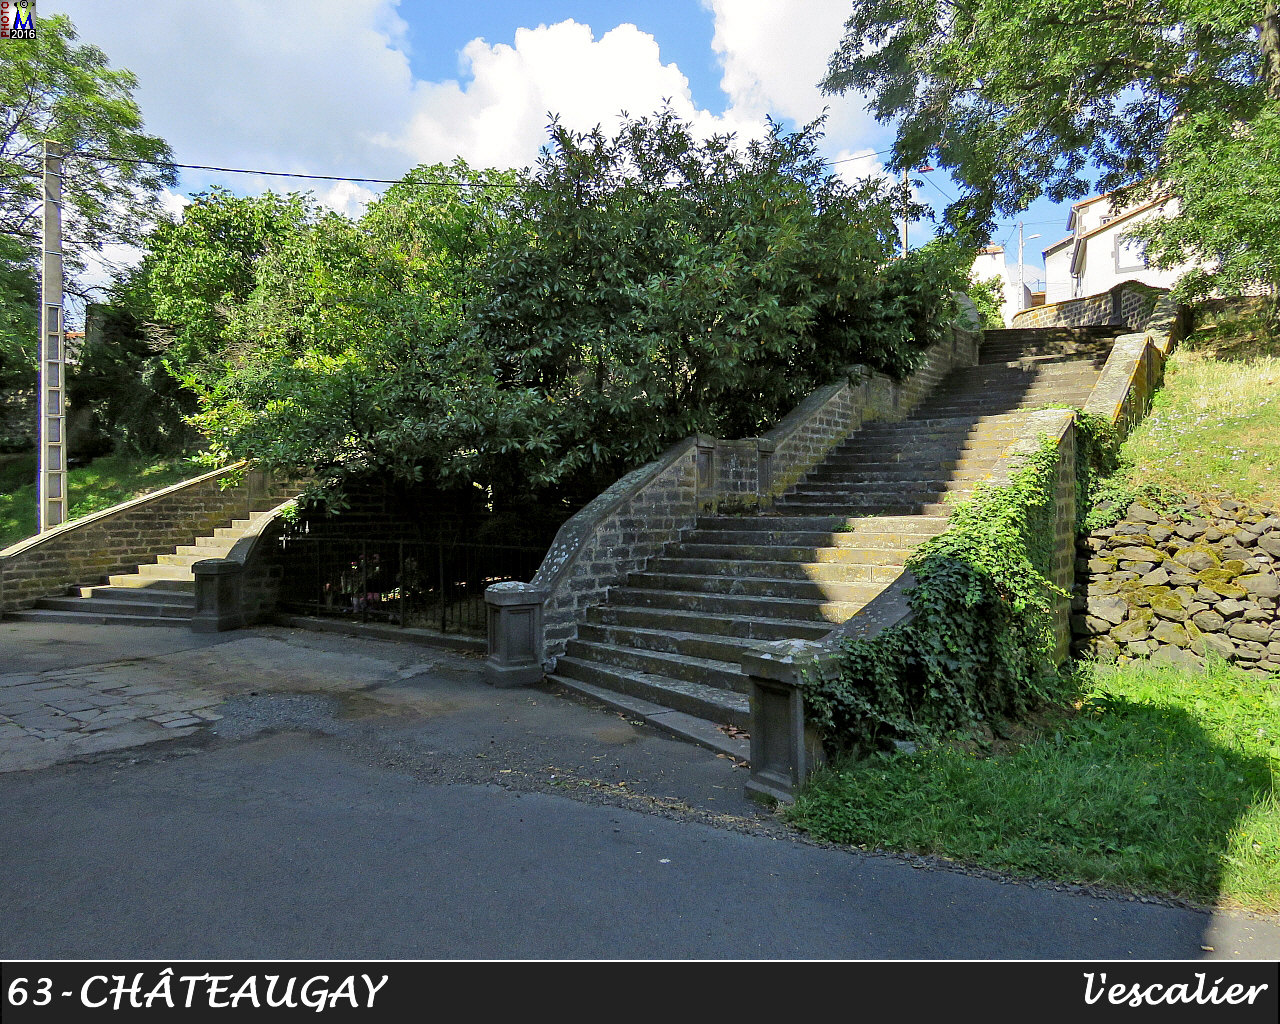 63CHATEAUGAY_escalier_100.jpg